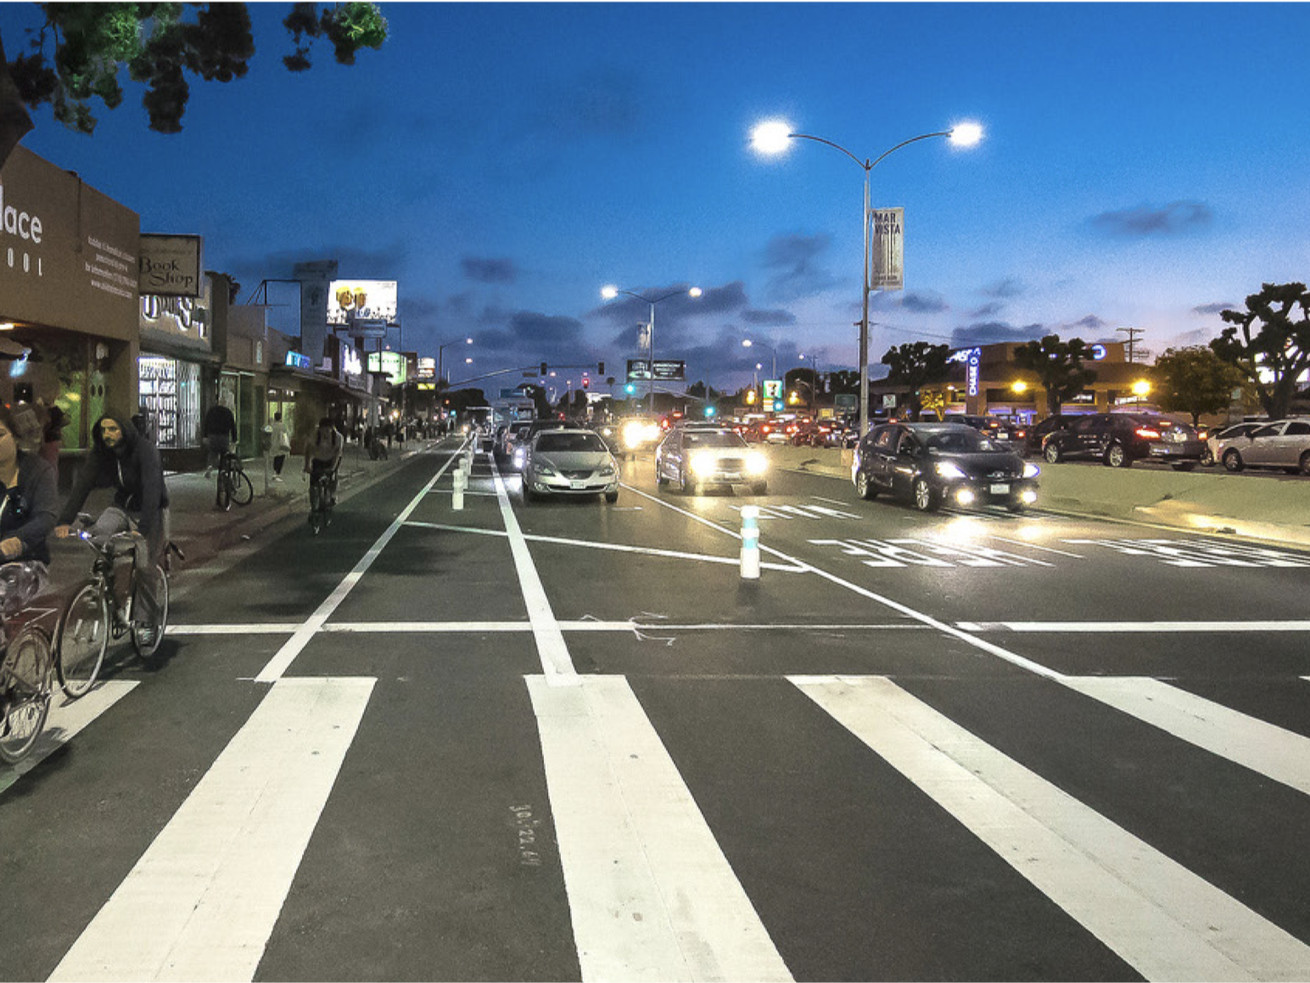 The project reduced the number of traffic lanes on a portion of Venice Boulevard, adding high-visibility crosswalks and protected bike lanes.